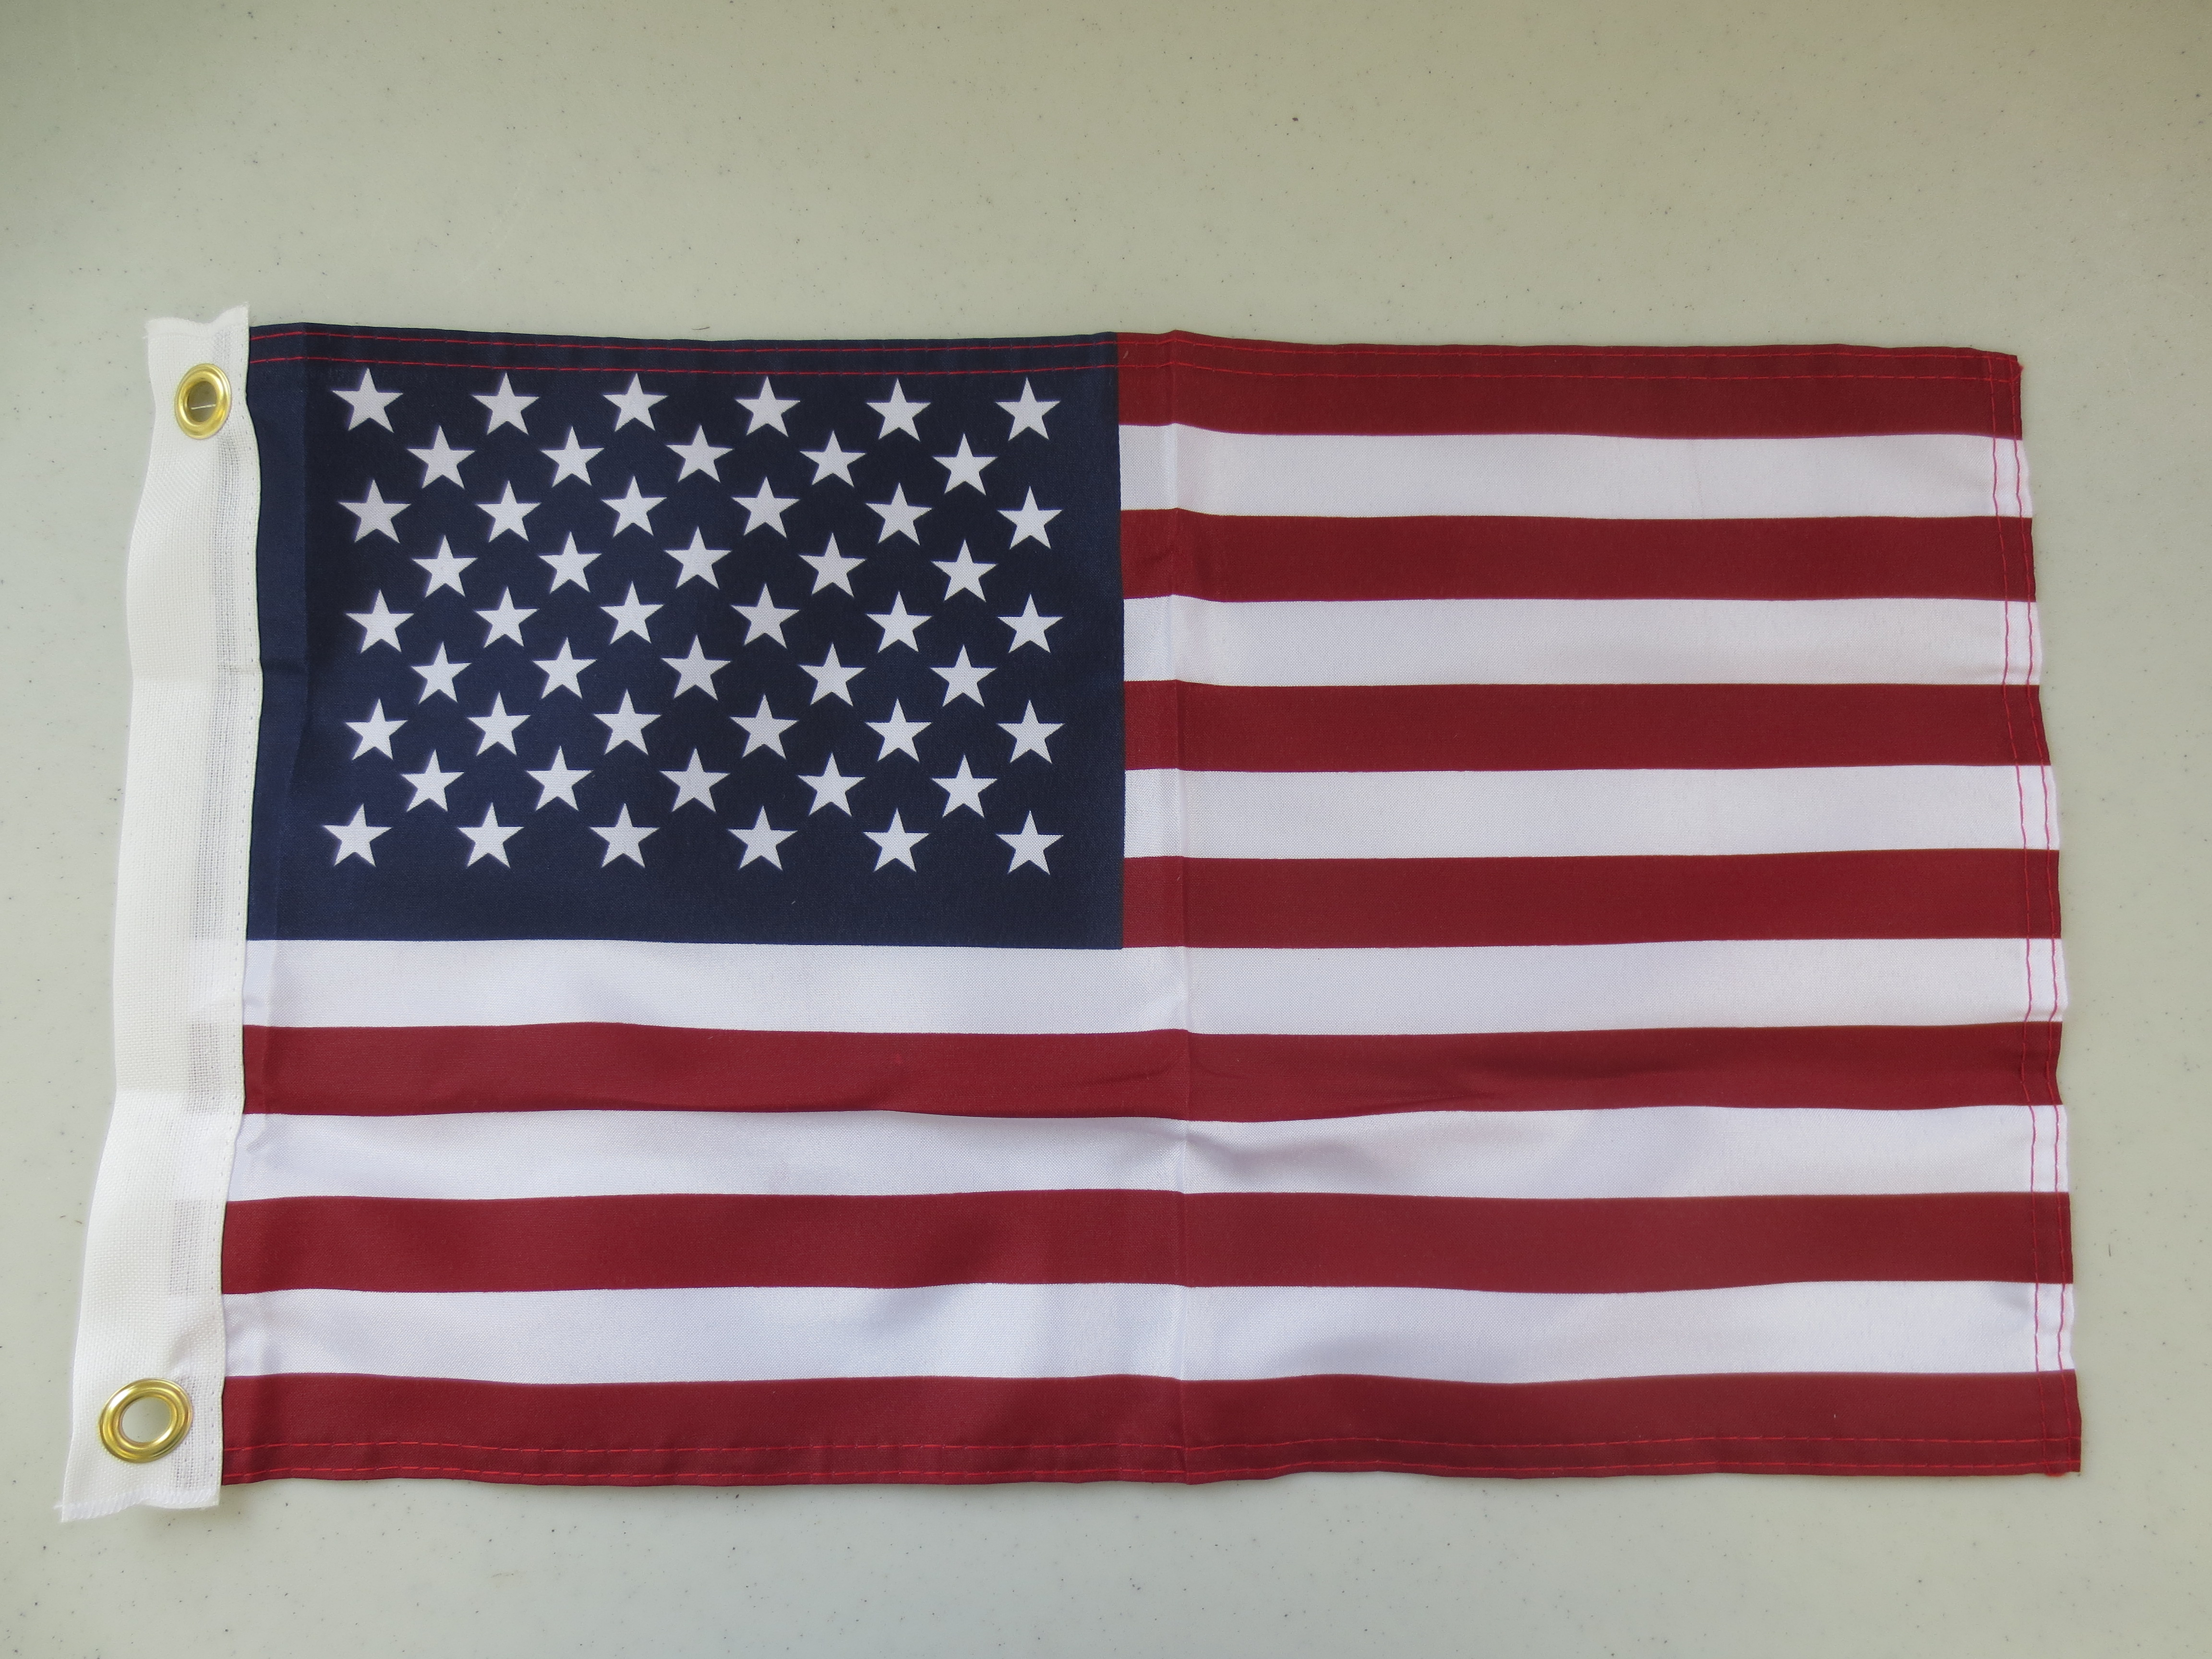 USA Flag - 2 FLAGS